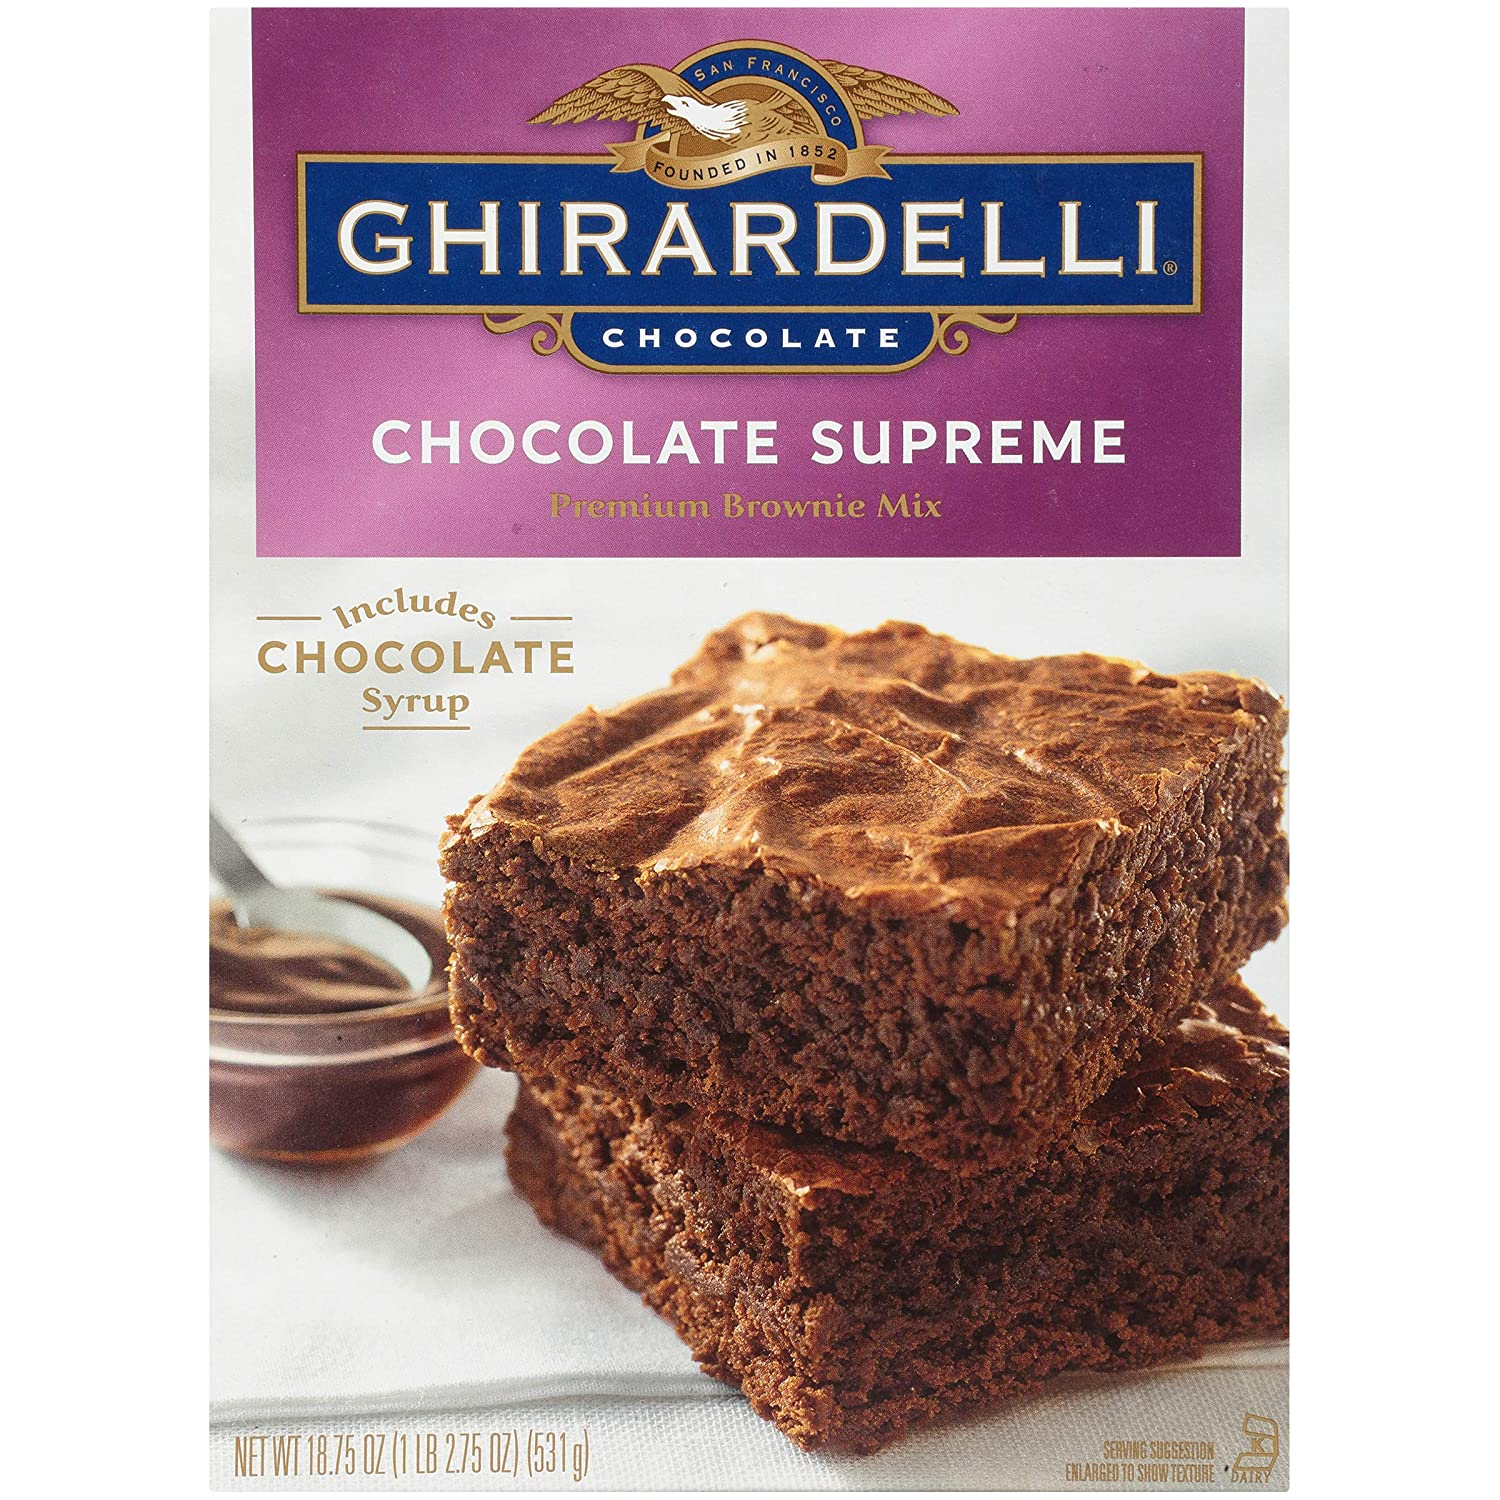 Ghirardelli Chocolate Supreme Premium Brownie Mix (531g)